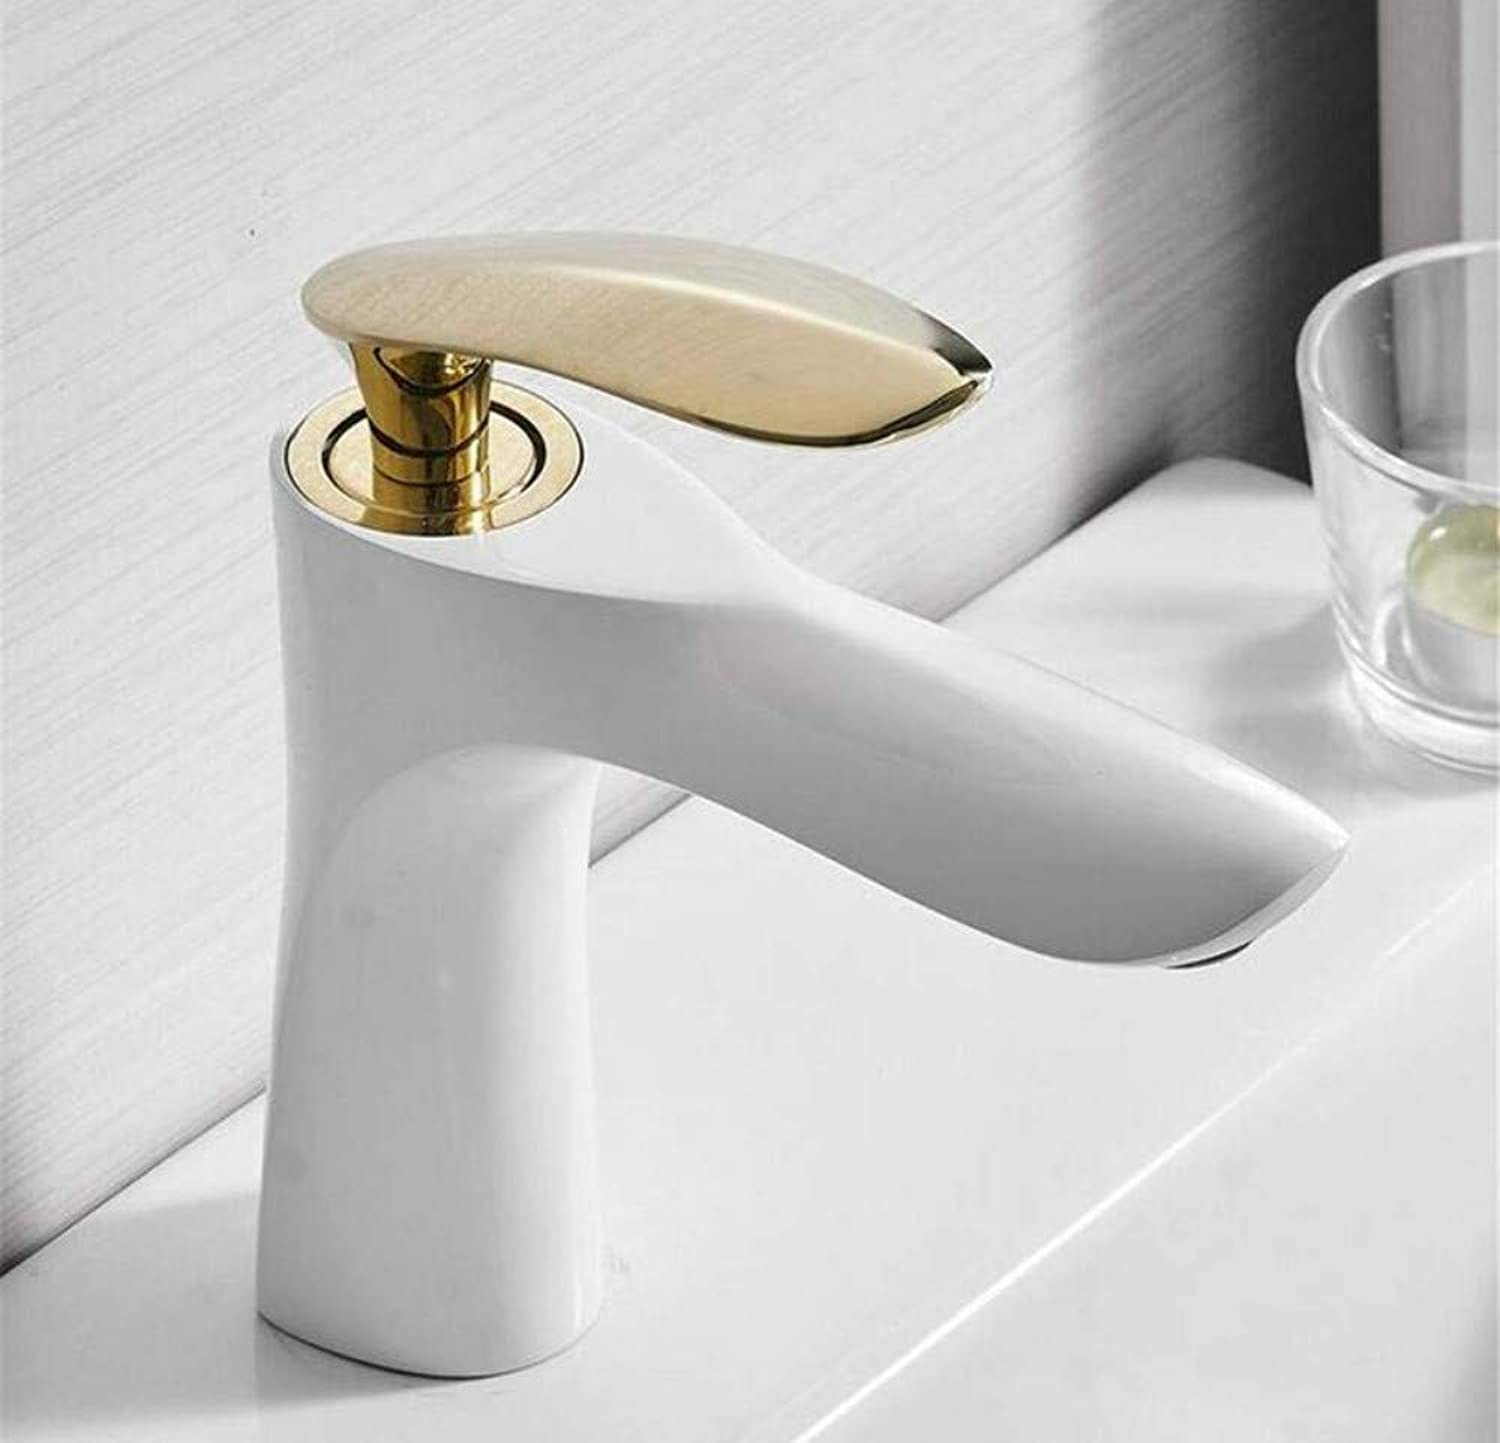 Kitchen Brass Hot and Cold Water Faucet Washbasin Mixer Art Bathroom Faucet Hot and Cold Water Basin Mixer Tap Black gold Brass